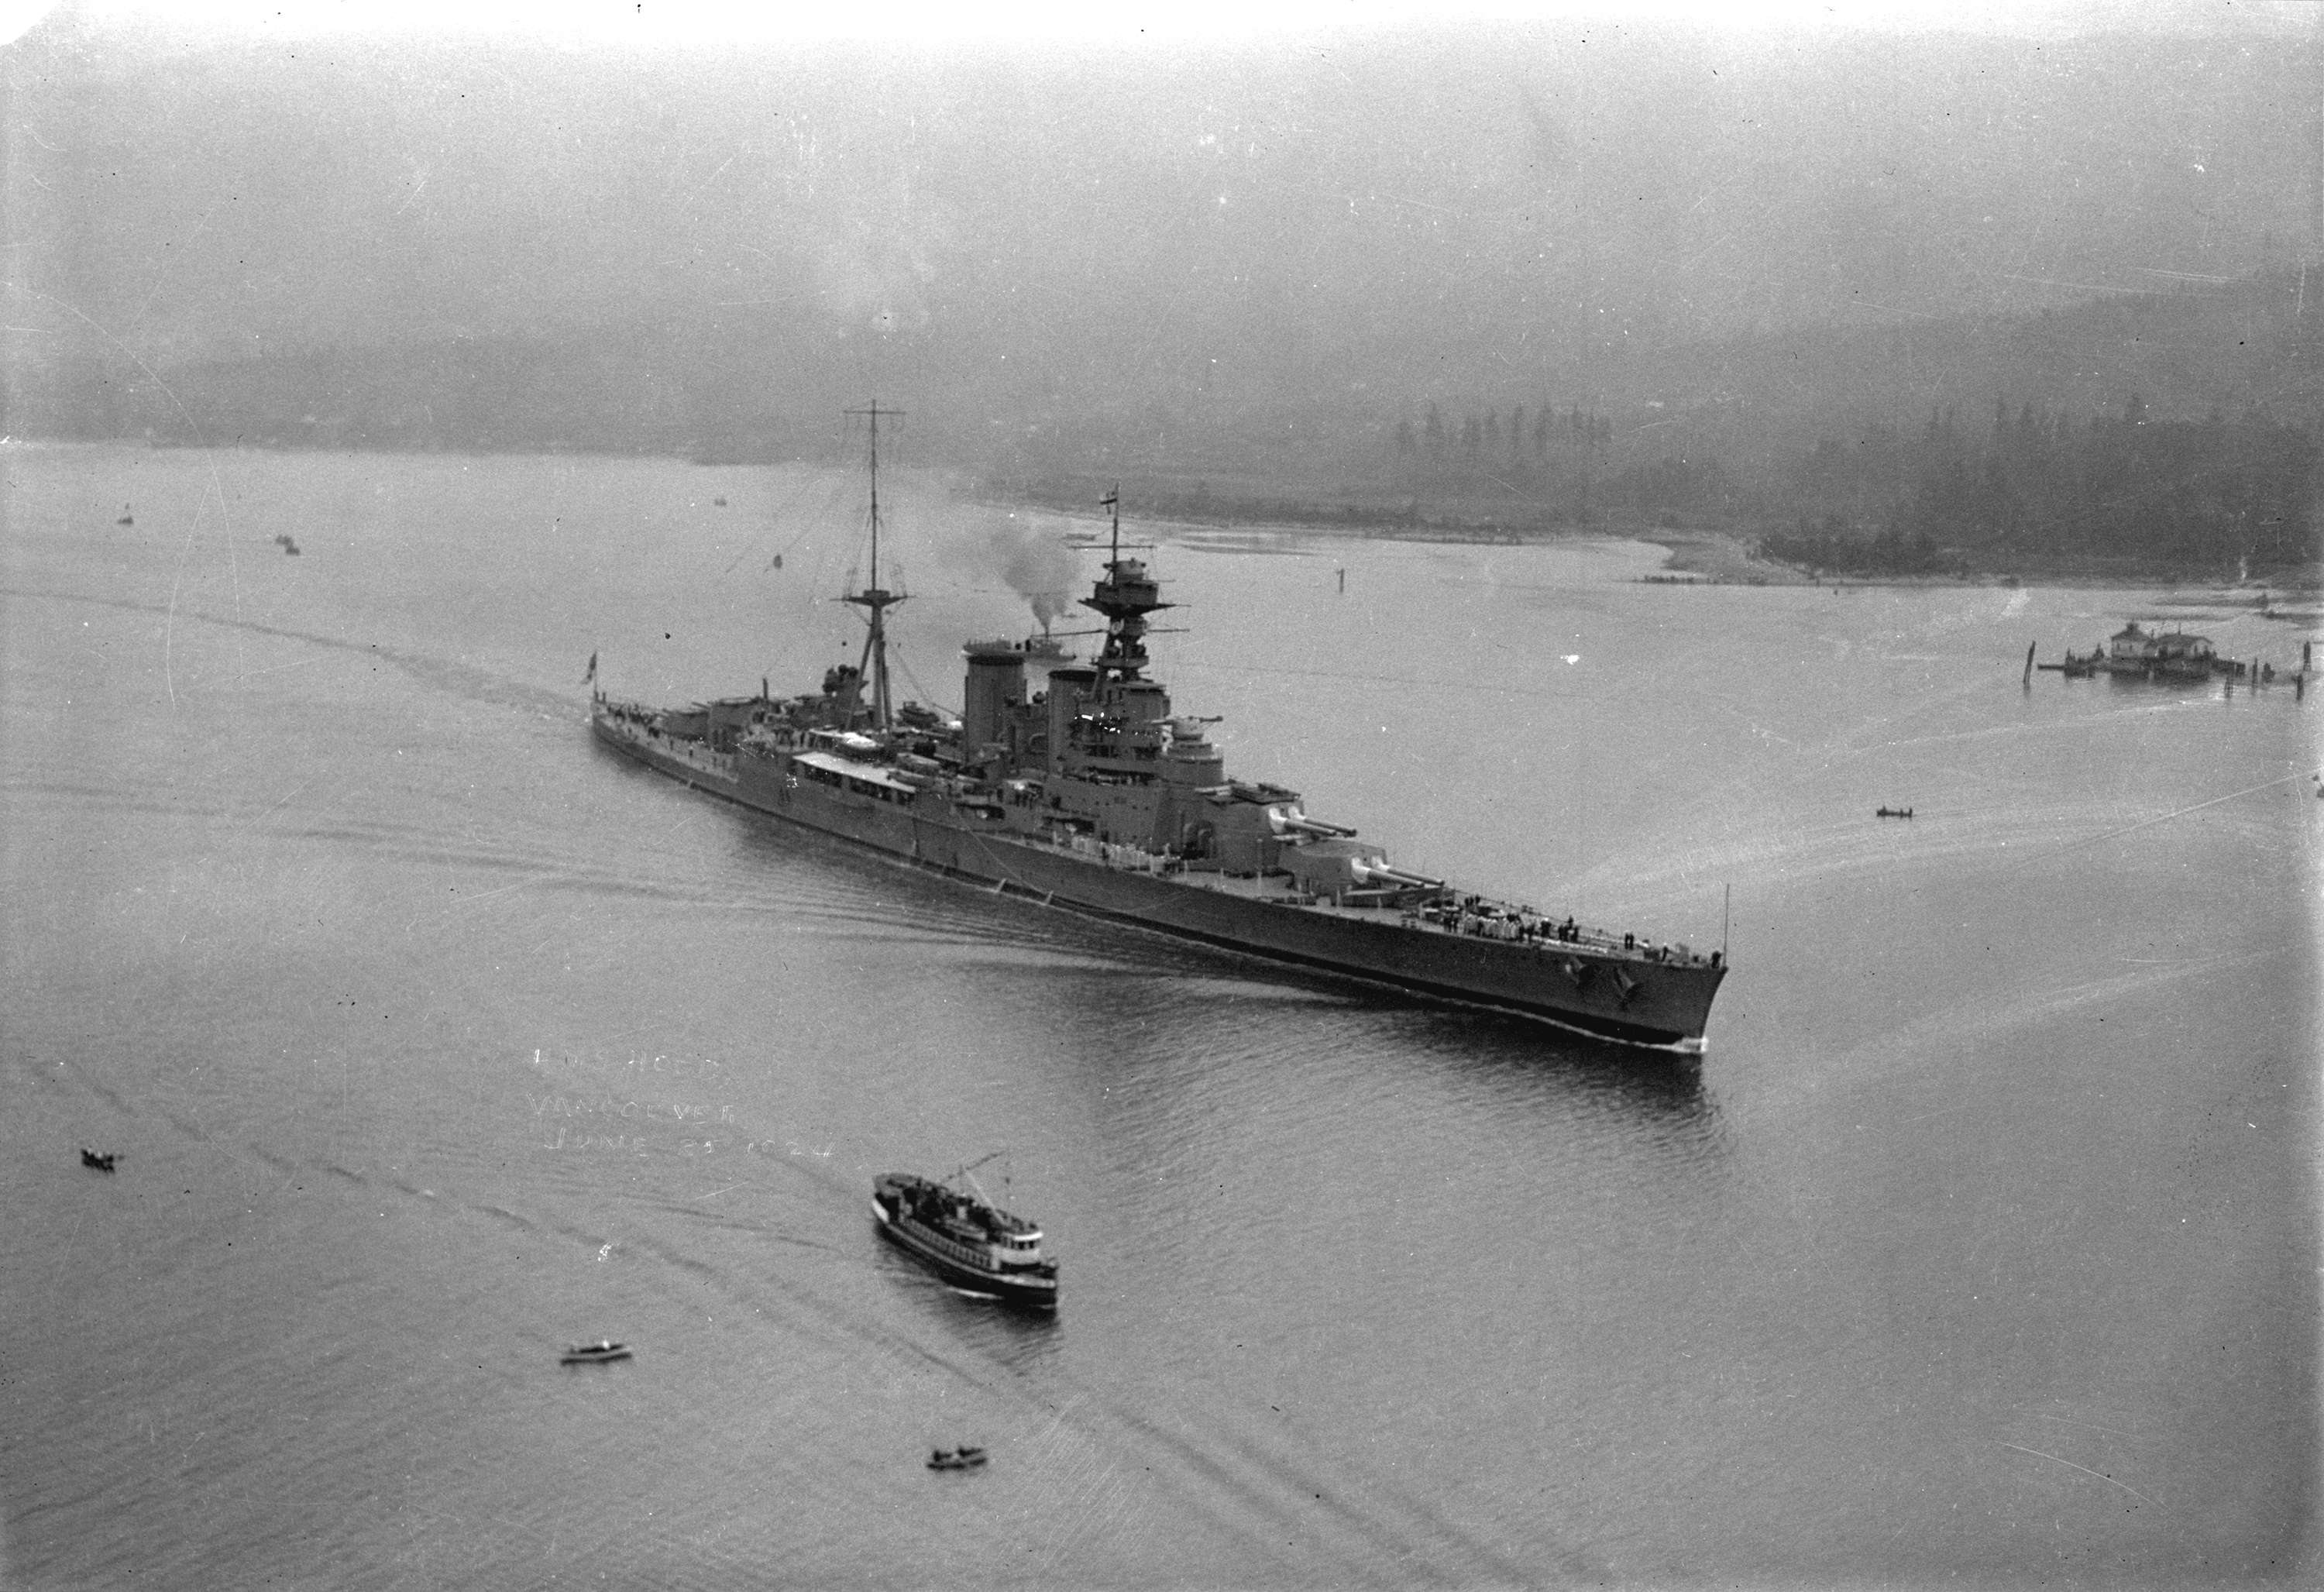 https://upload.wikimedia.org/wikipedia/commons/e/e0/HMS_Hood_entering_Vancouver_Harbour.jpg